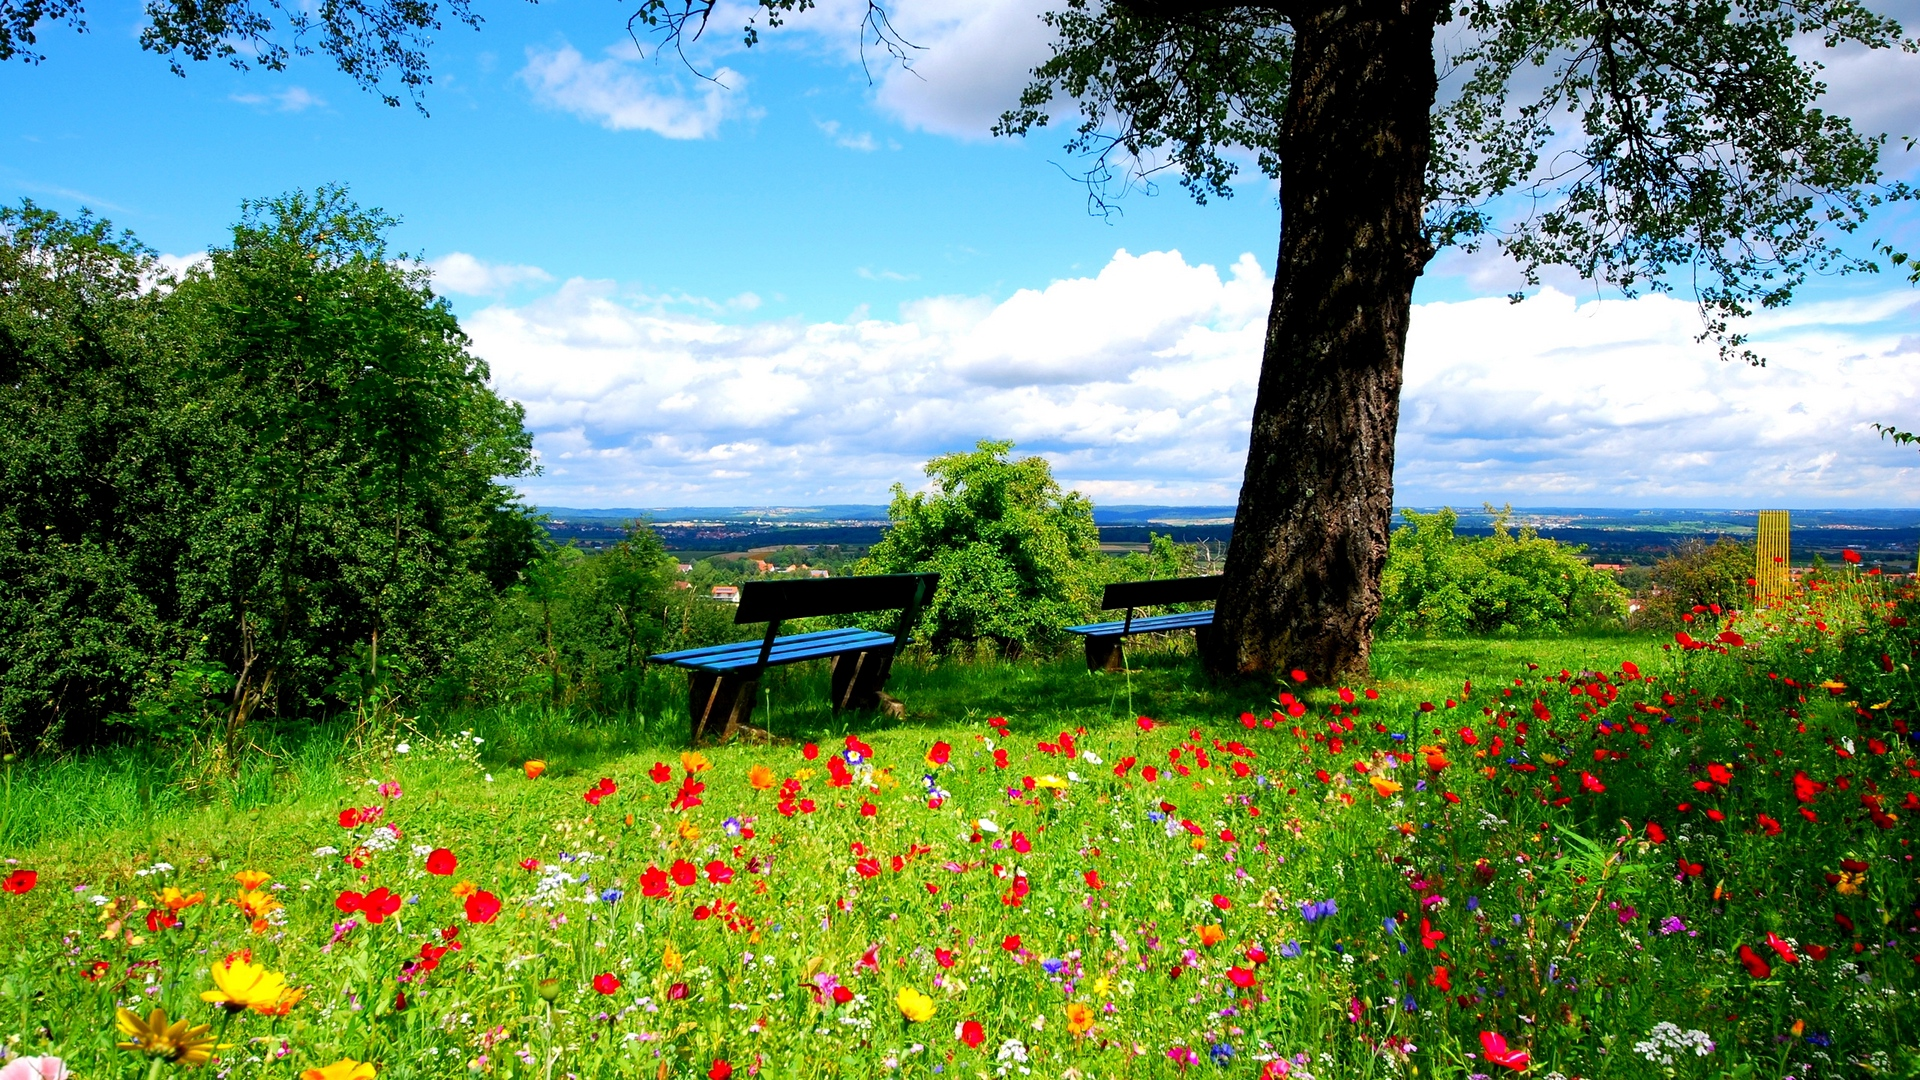 Wallpaper Trees, Benches, Flowers, Nature - Beautiful Nature Background Hd - HD Wallpaper